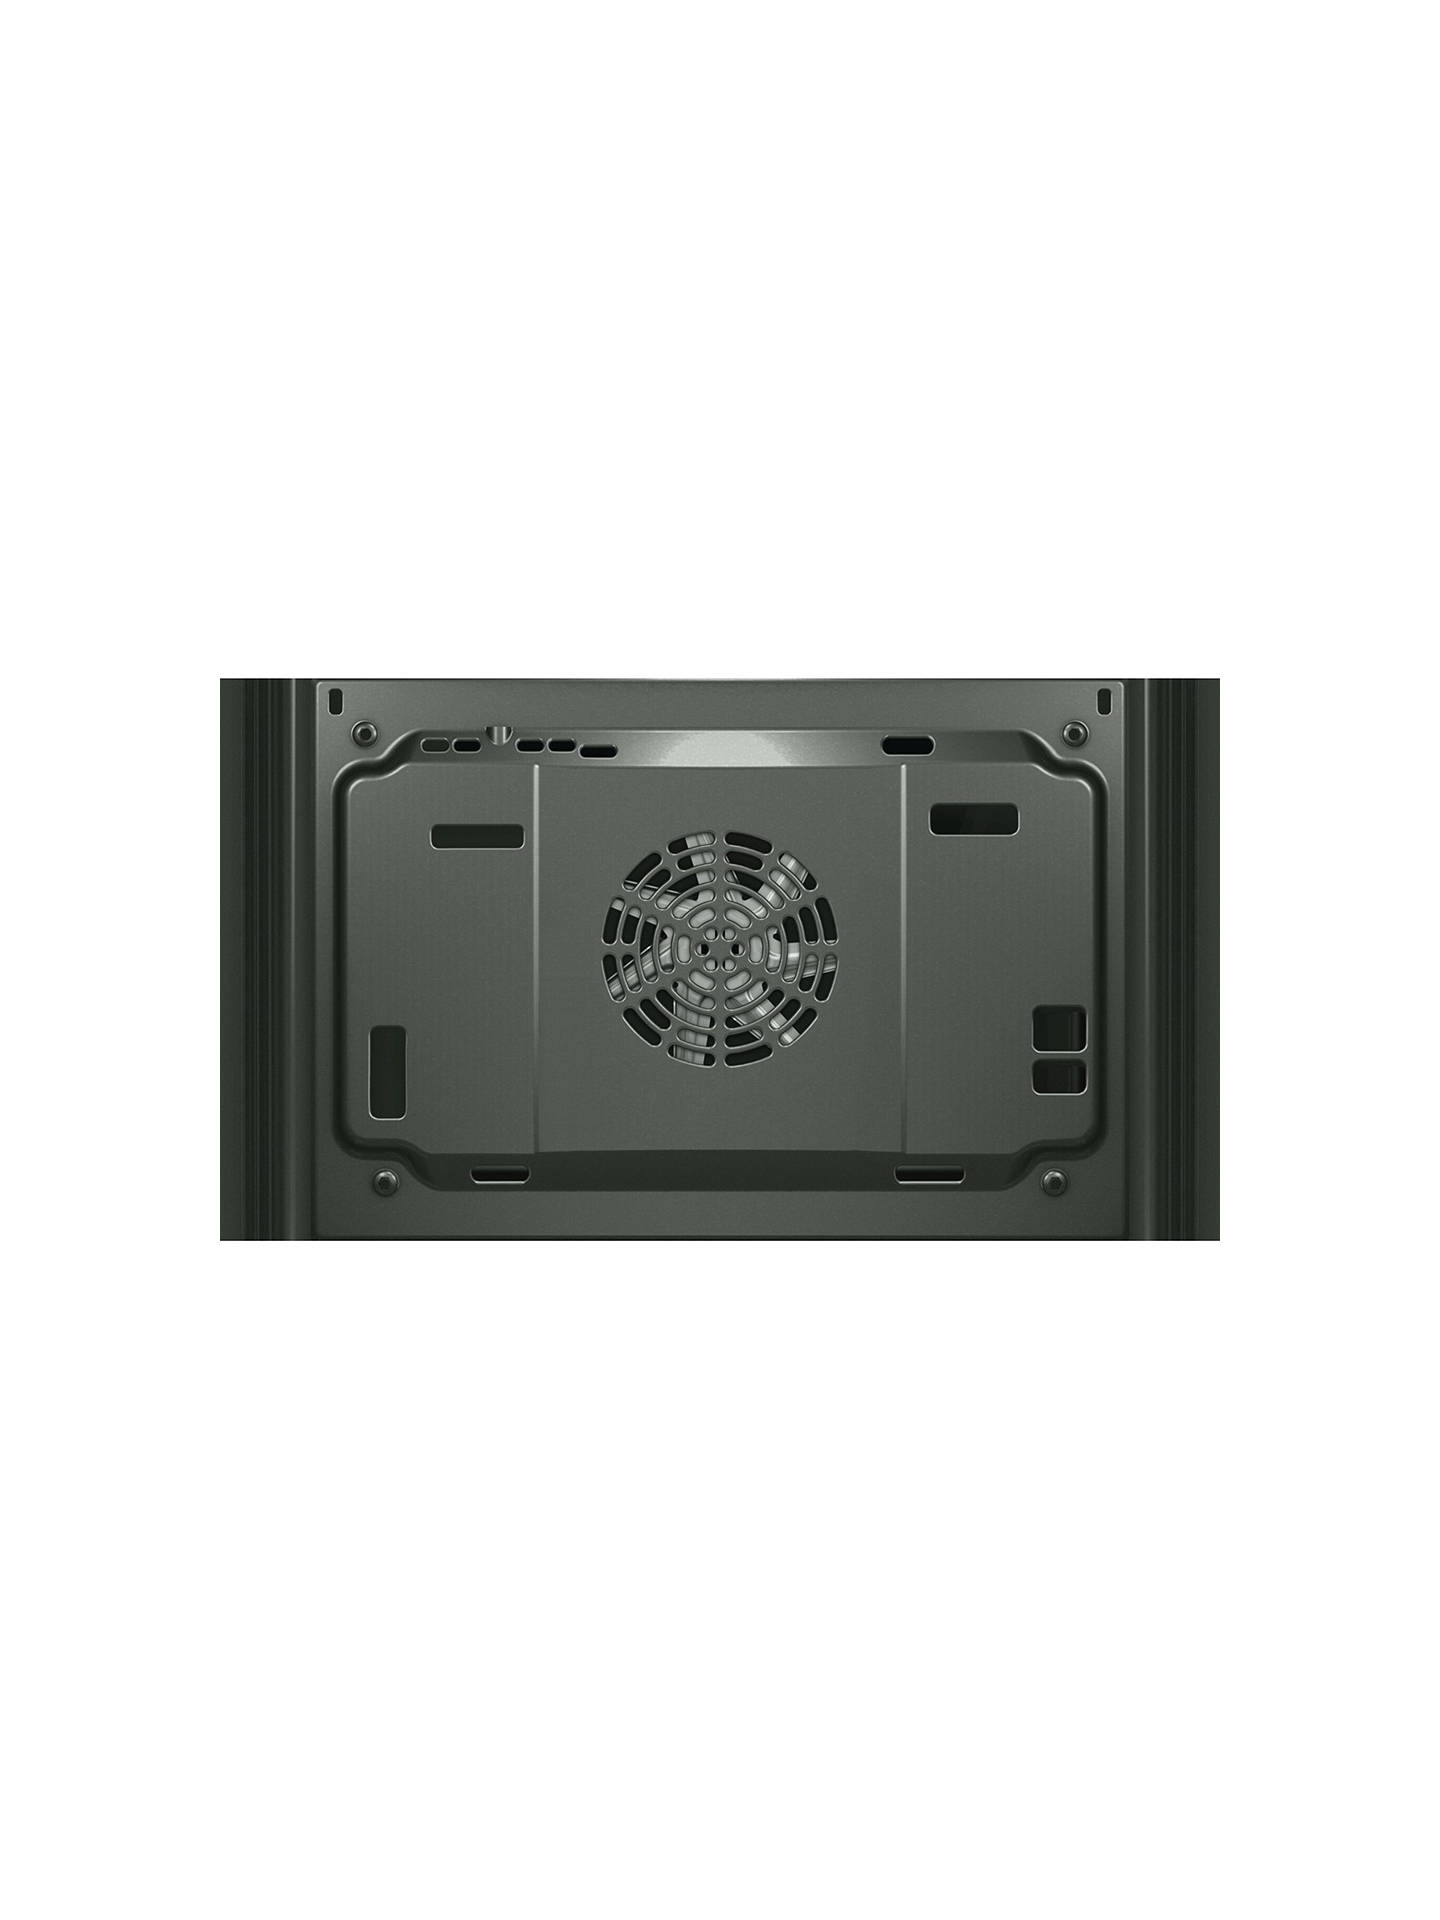 Bosch HBA13B150B Single Electric Oven, Brushed Stainless Steel is no longer  available online